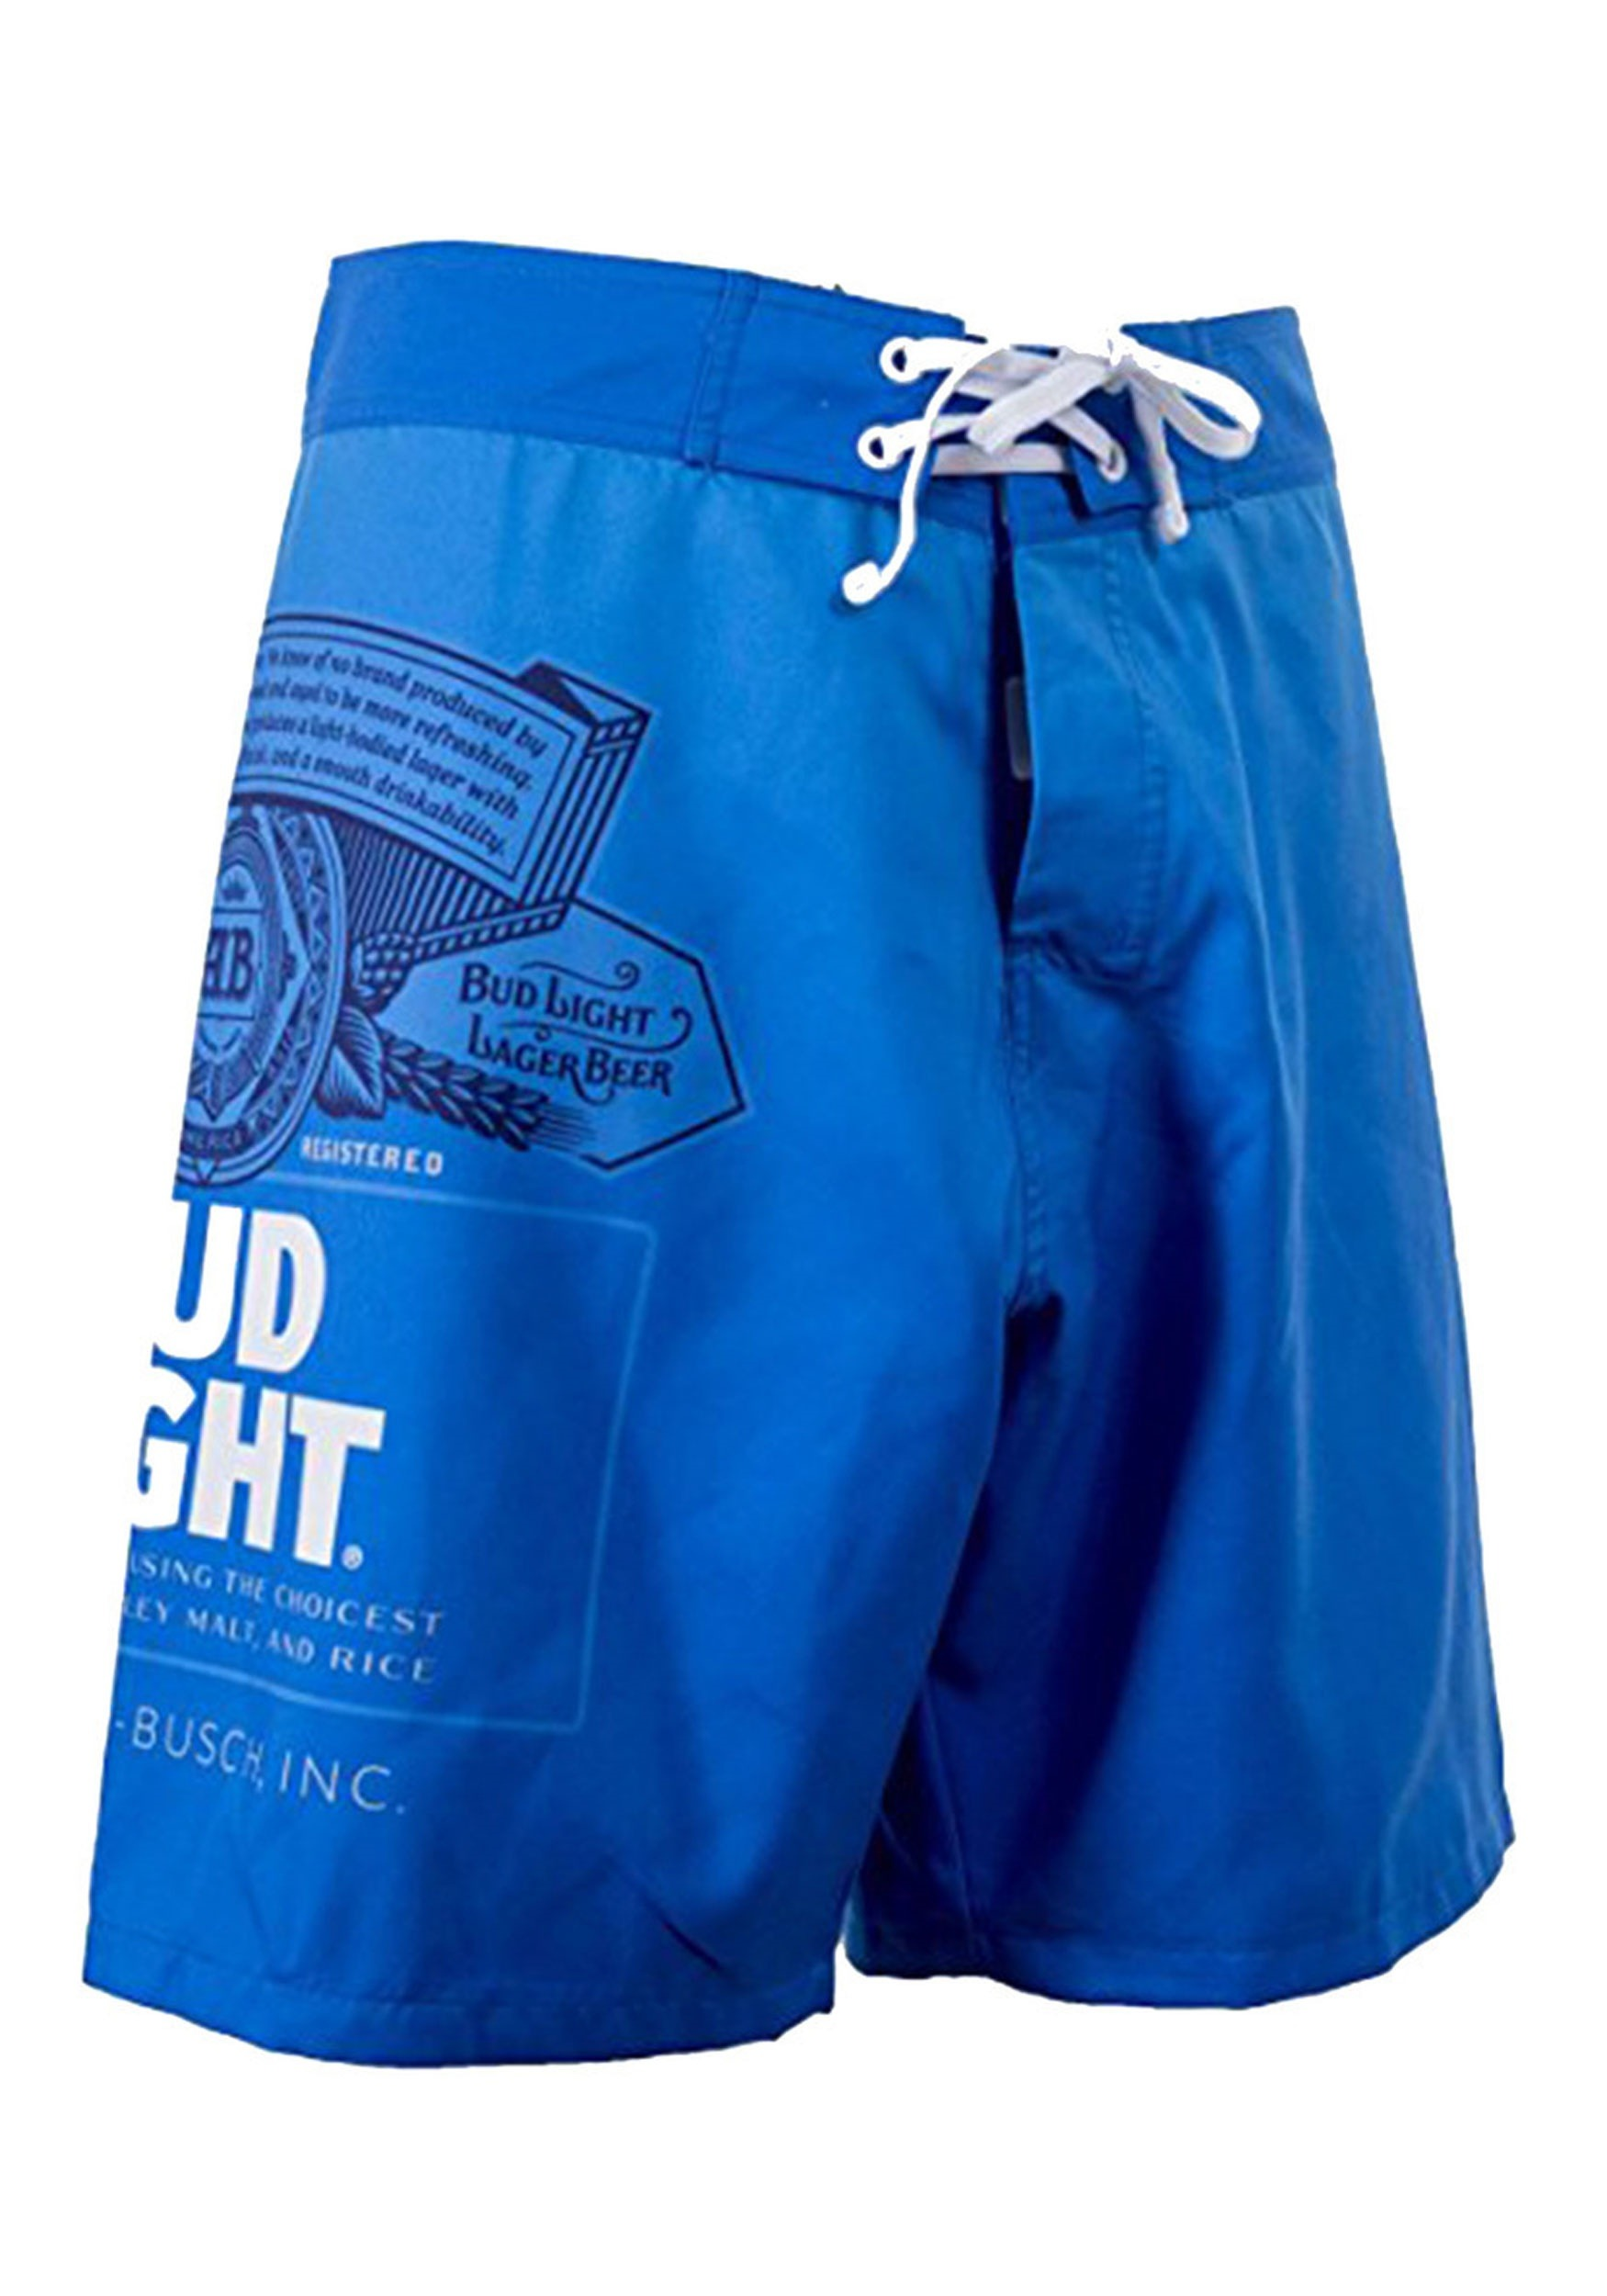 1bbabc39f2 Men's Bud Light Swim Trunks